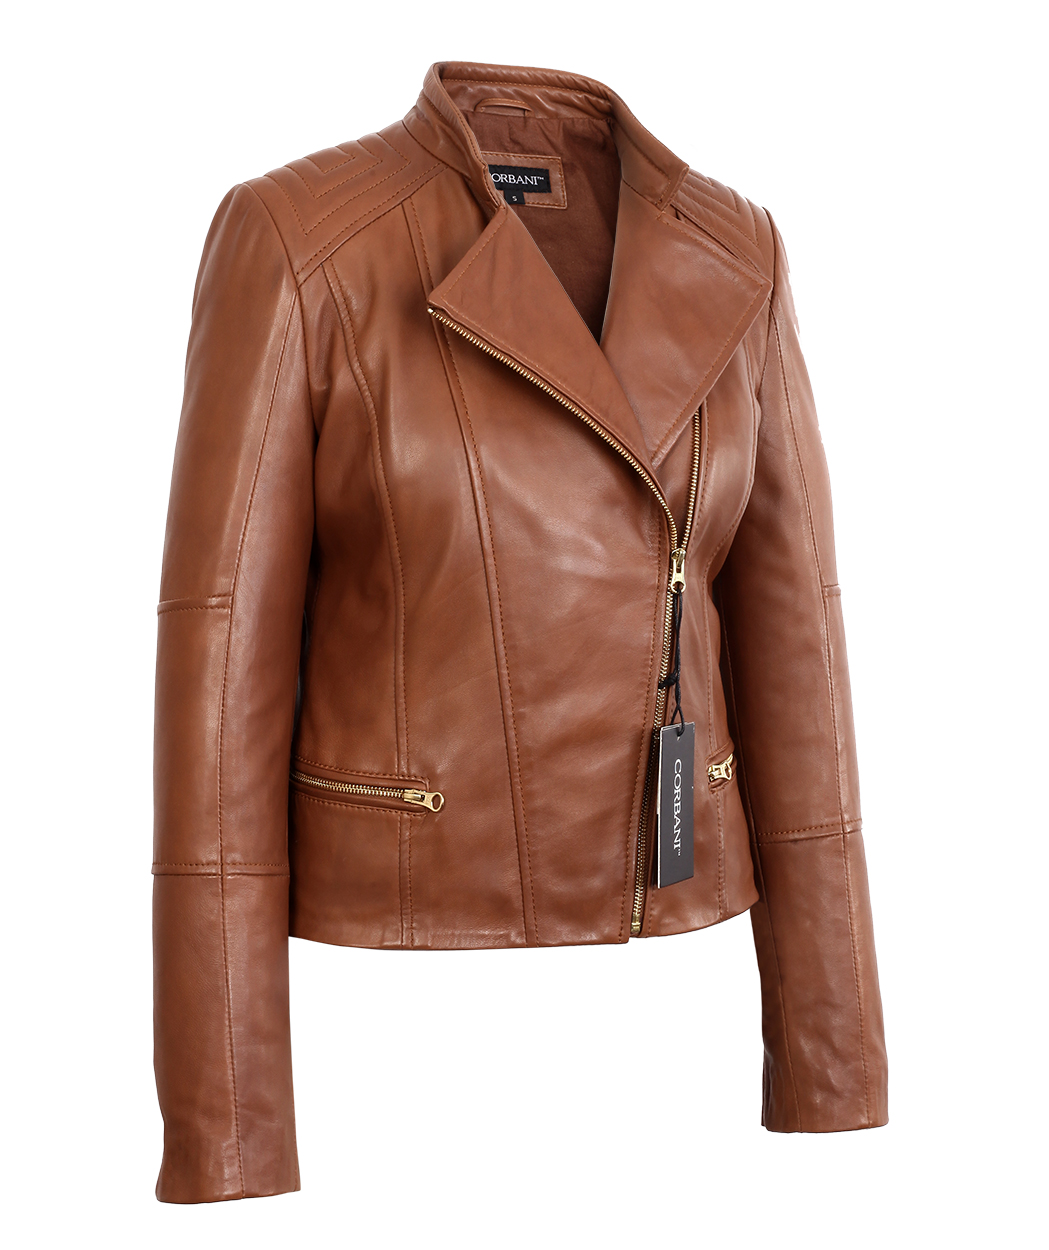 92a291987a1 Womens Brown Asymmetrical Lambskin Real Leather Jacket Light Gold Hardware  - Genuine Leather Jackets by Corbani